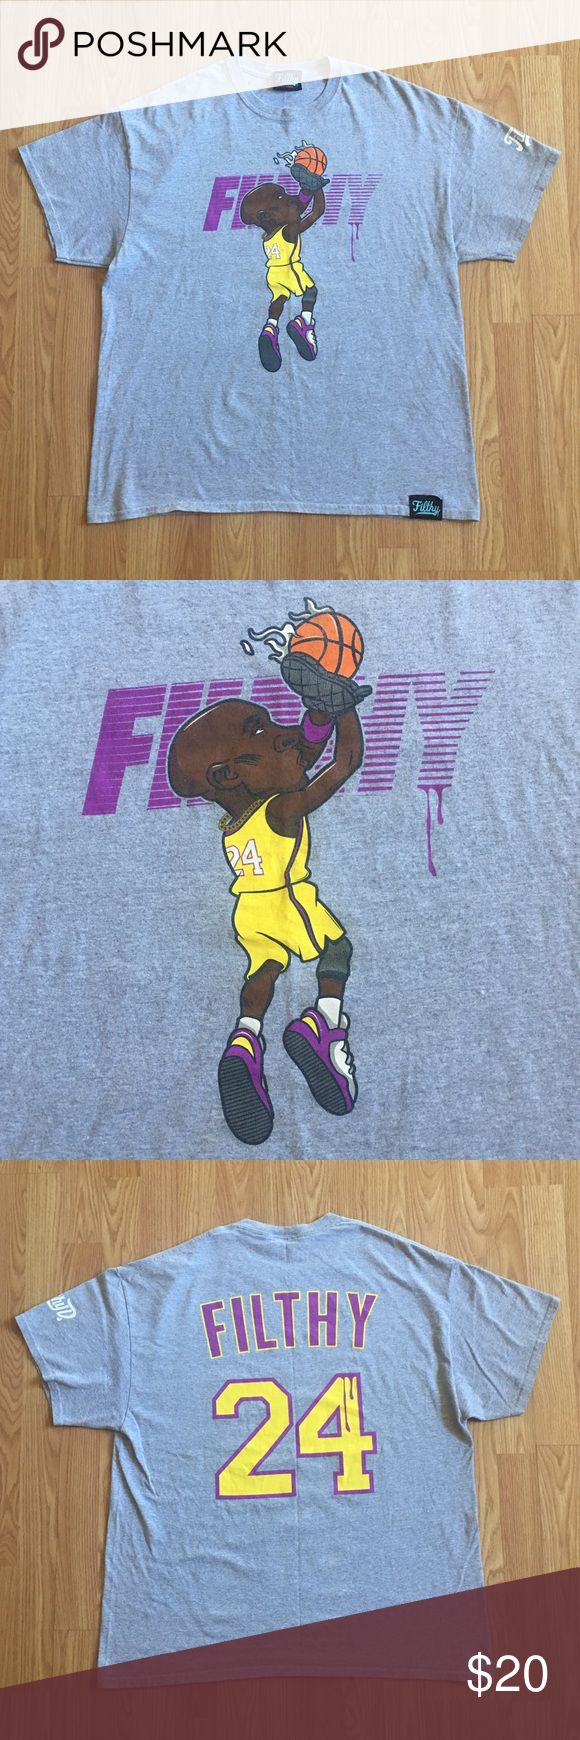 Filthy Kobe Bryant T'shirt Up for sale is a Filthy Kobe Bryant T'shirt in A+ condition with no flaws ! filthy Shirts Tees - Short Sleeve